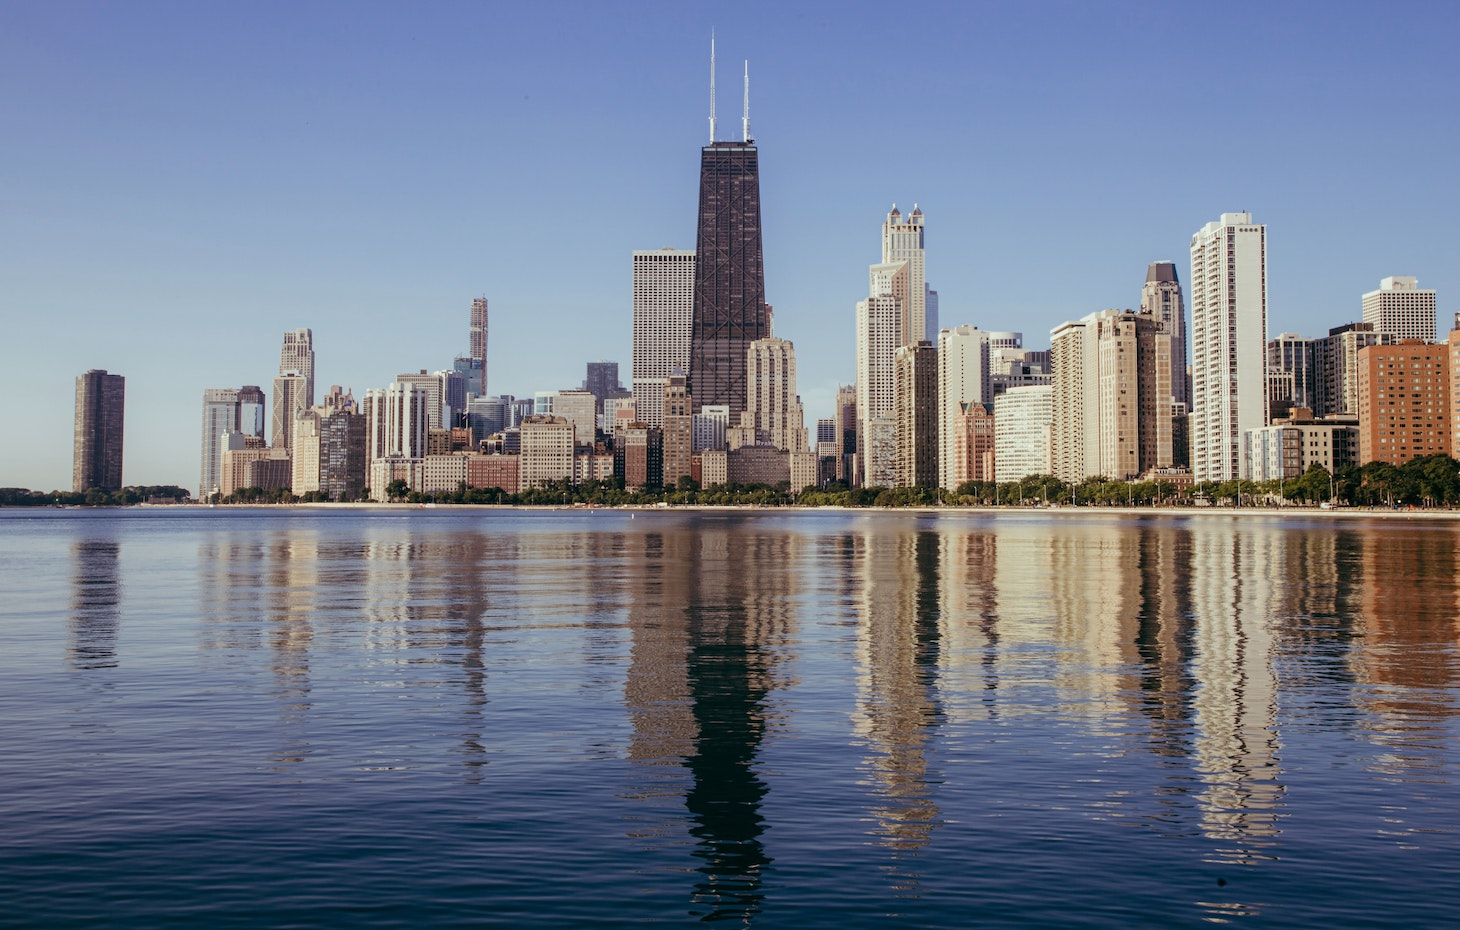 THE BEST BIKE RIDES IN CHICAGO